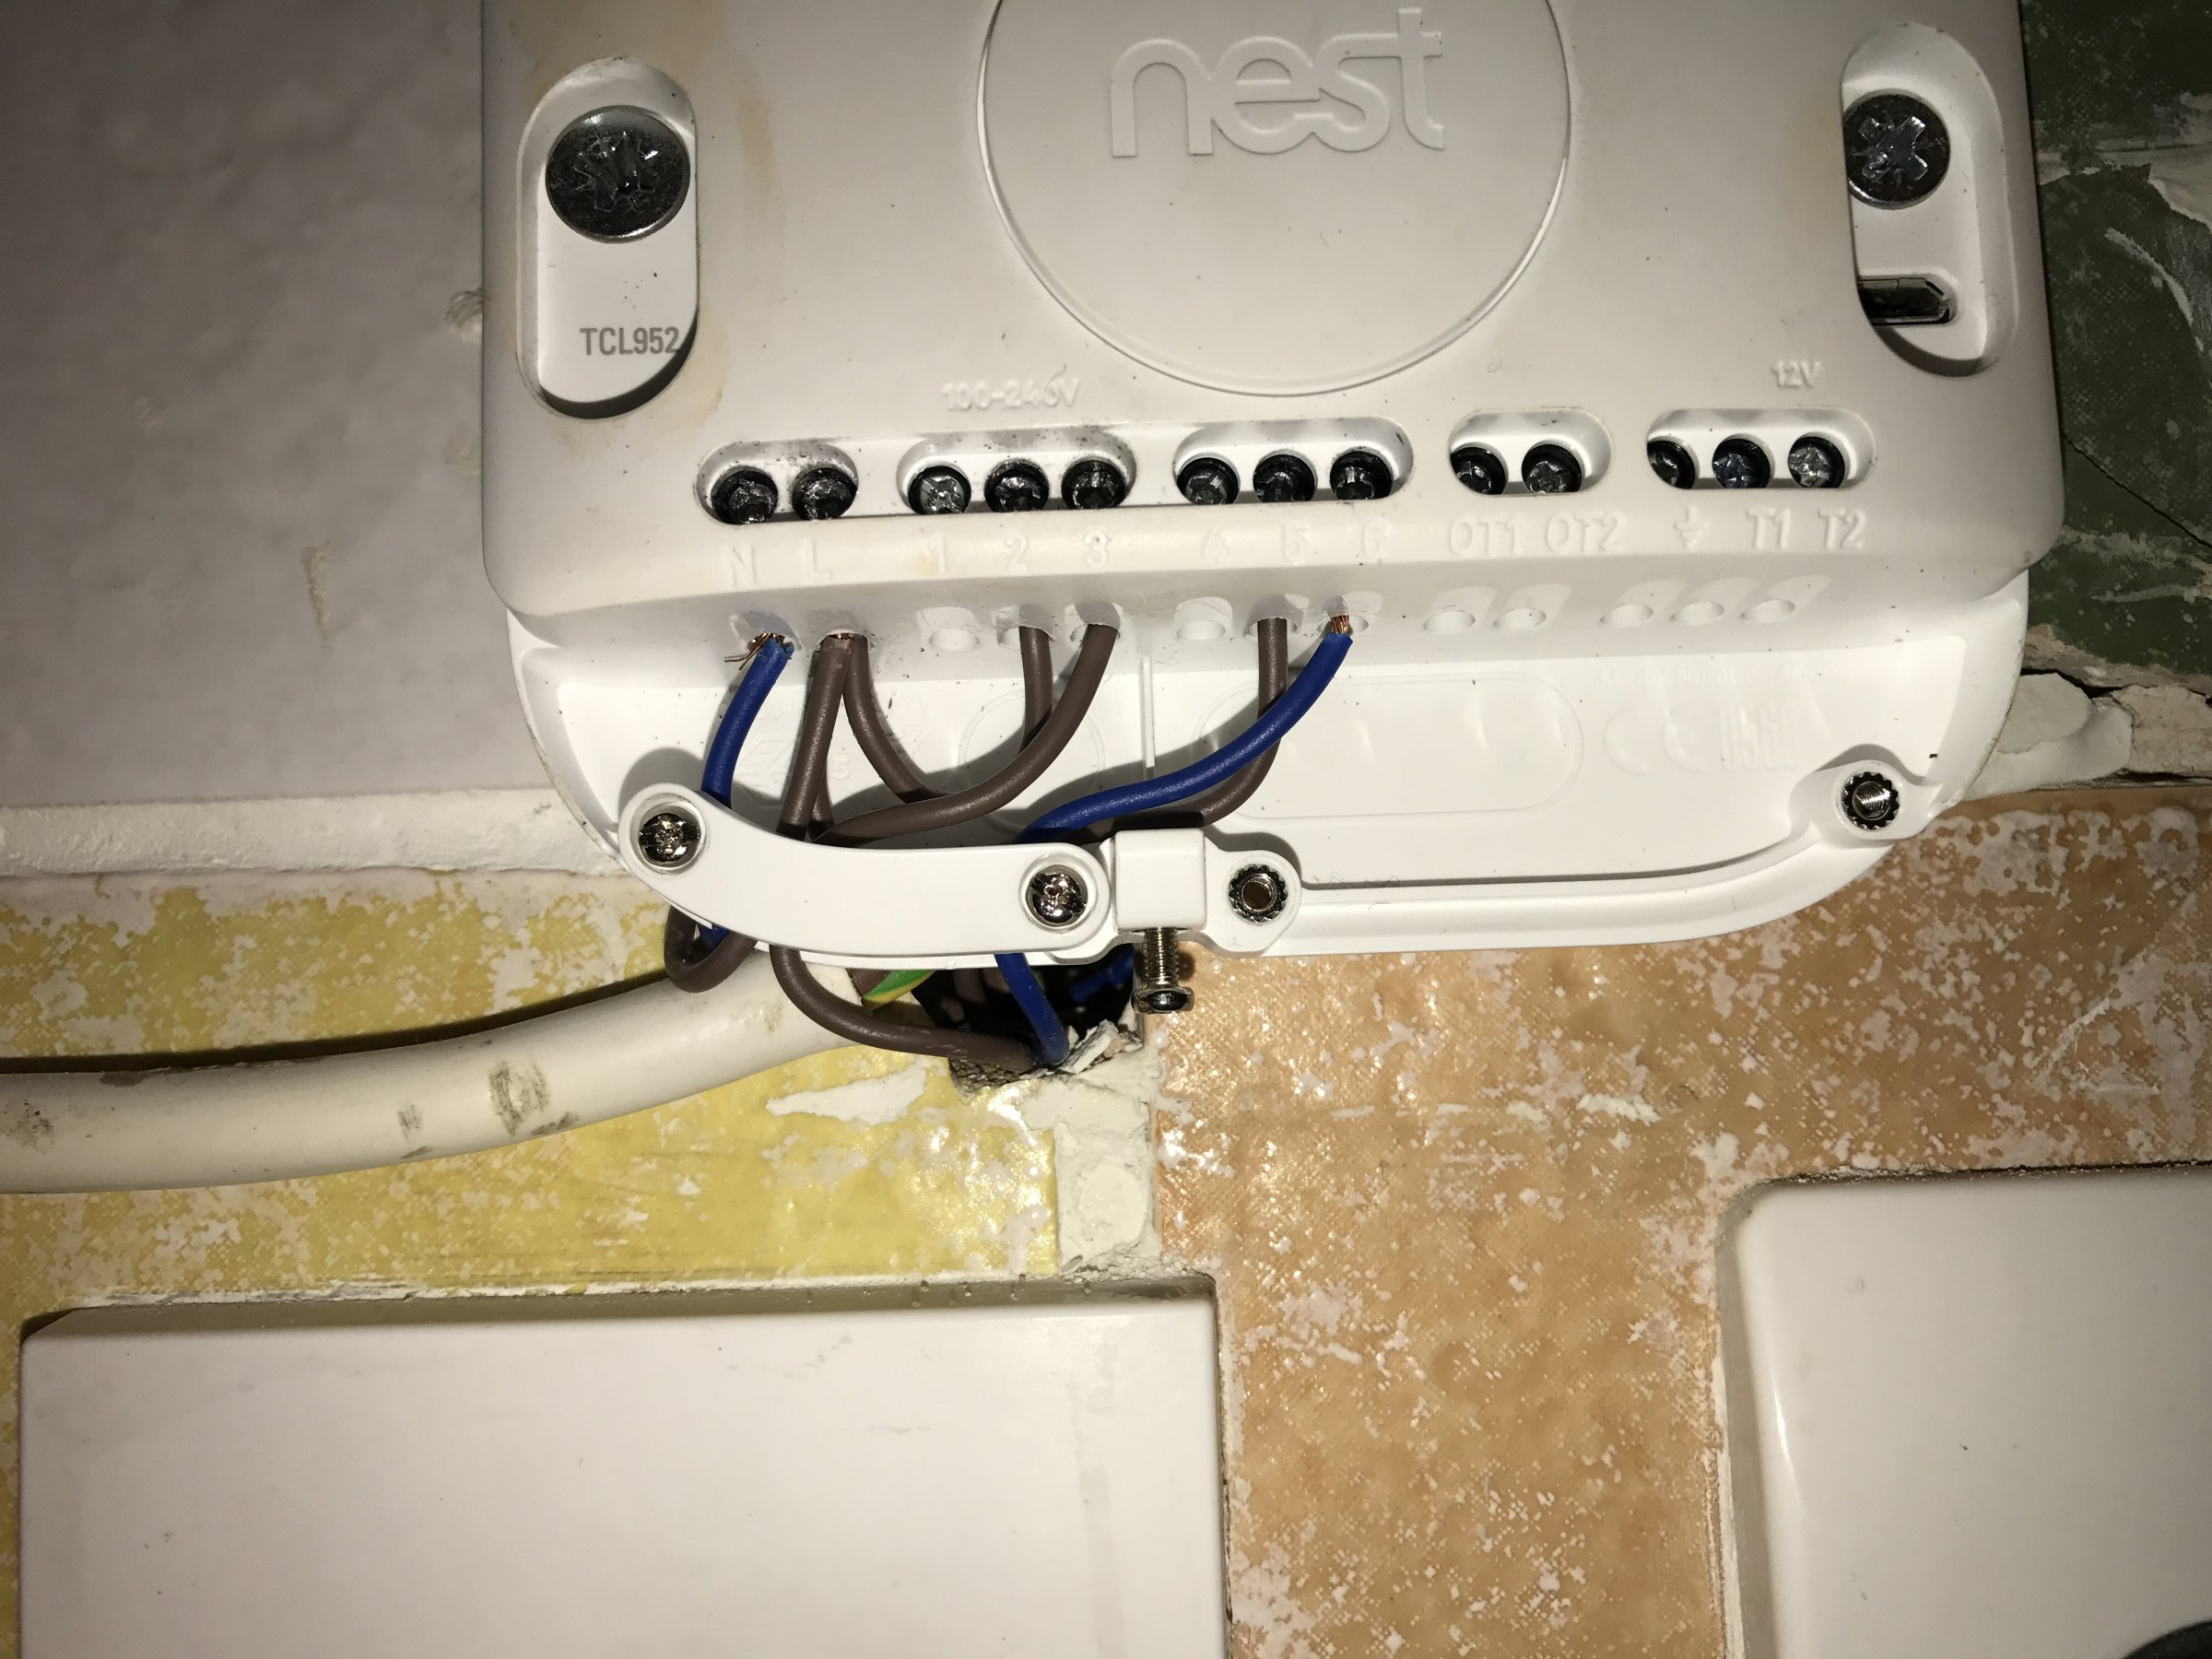 Nest 3rd Generation Installation 240v Diynot Forums Mains Voltage Thermostat With 2 Wire Connection Earth Which Of The Cables Would I Use For T1 And T2 Rblueyellow On Both Ends Heatlink